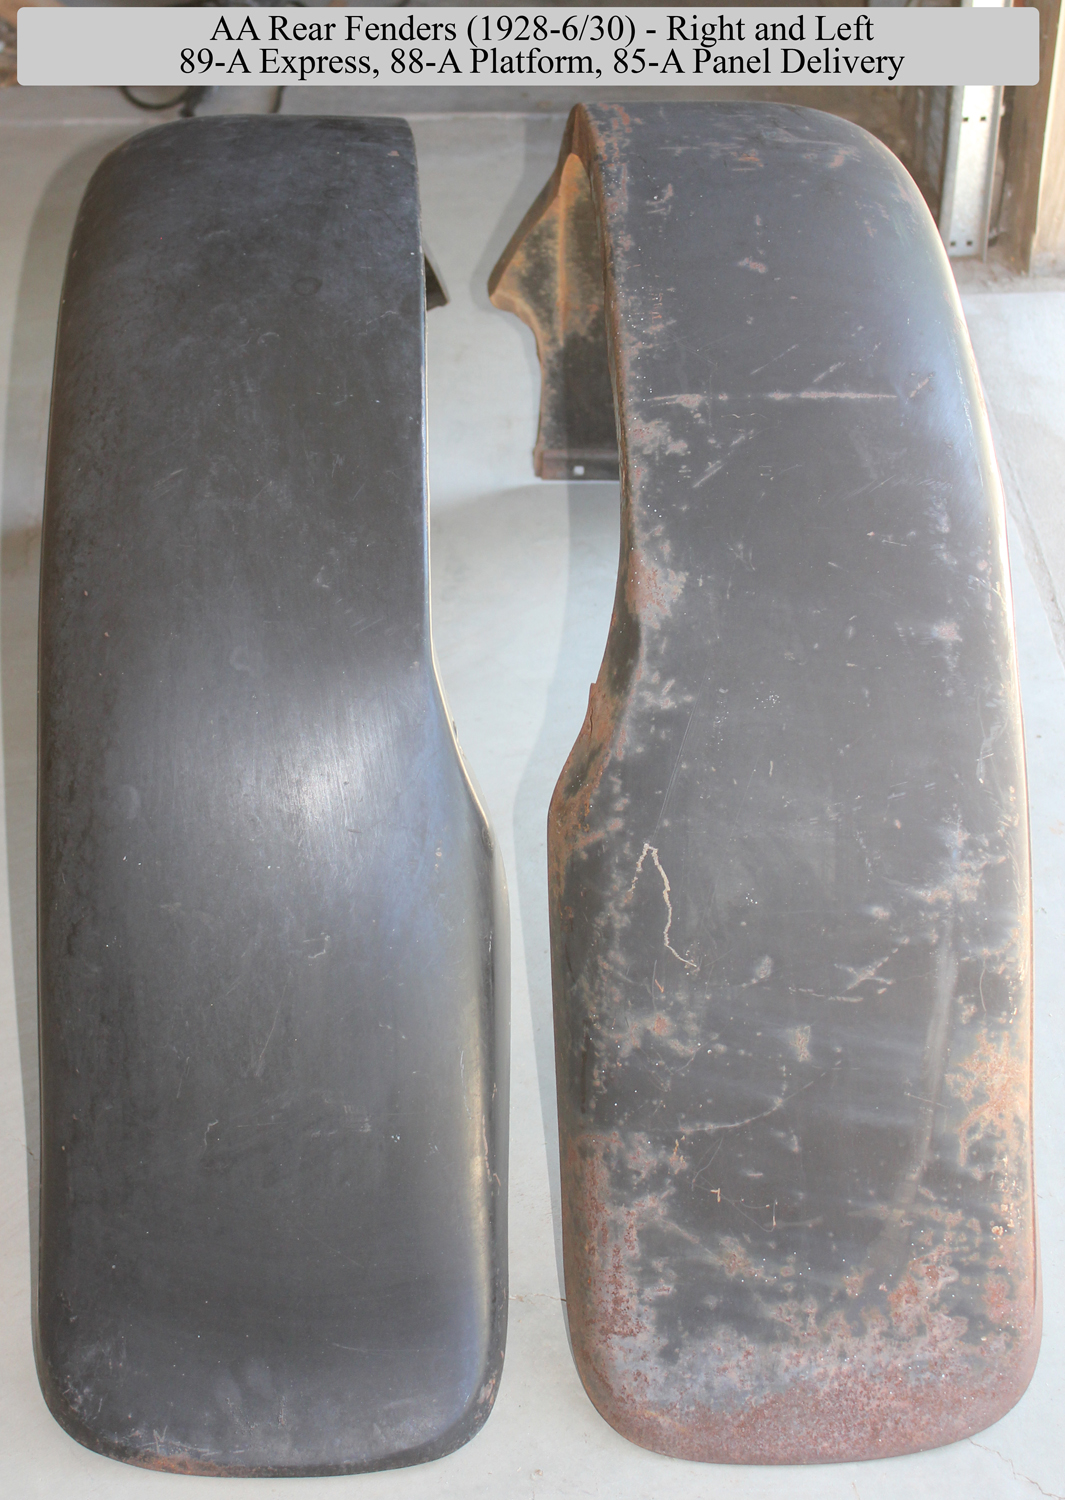 AA-rear-fenders-28-6-30-ax.jpg